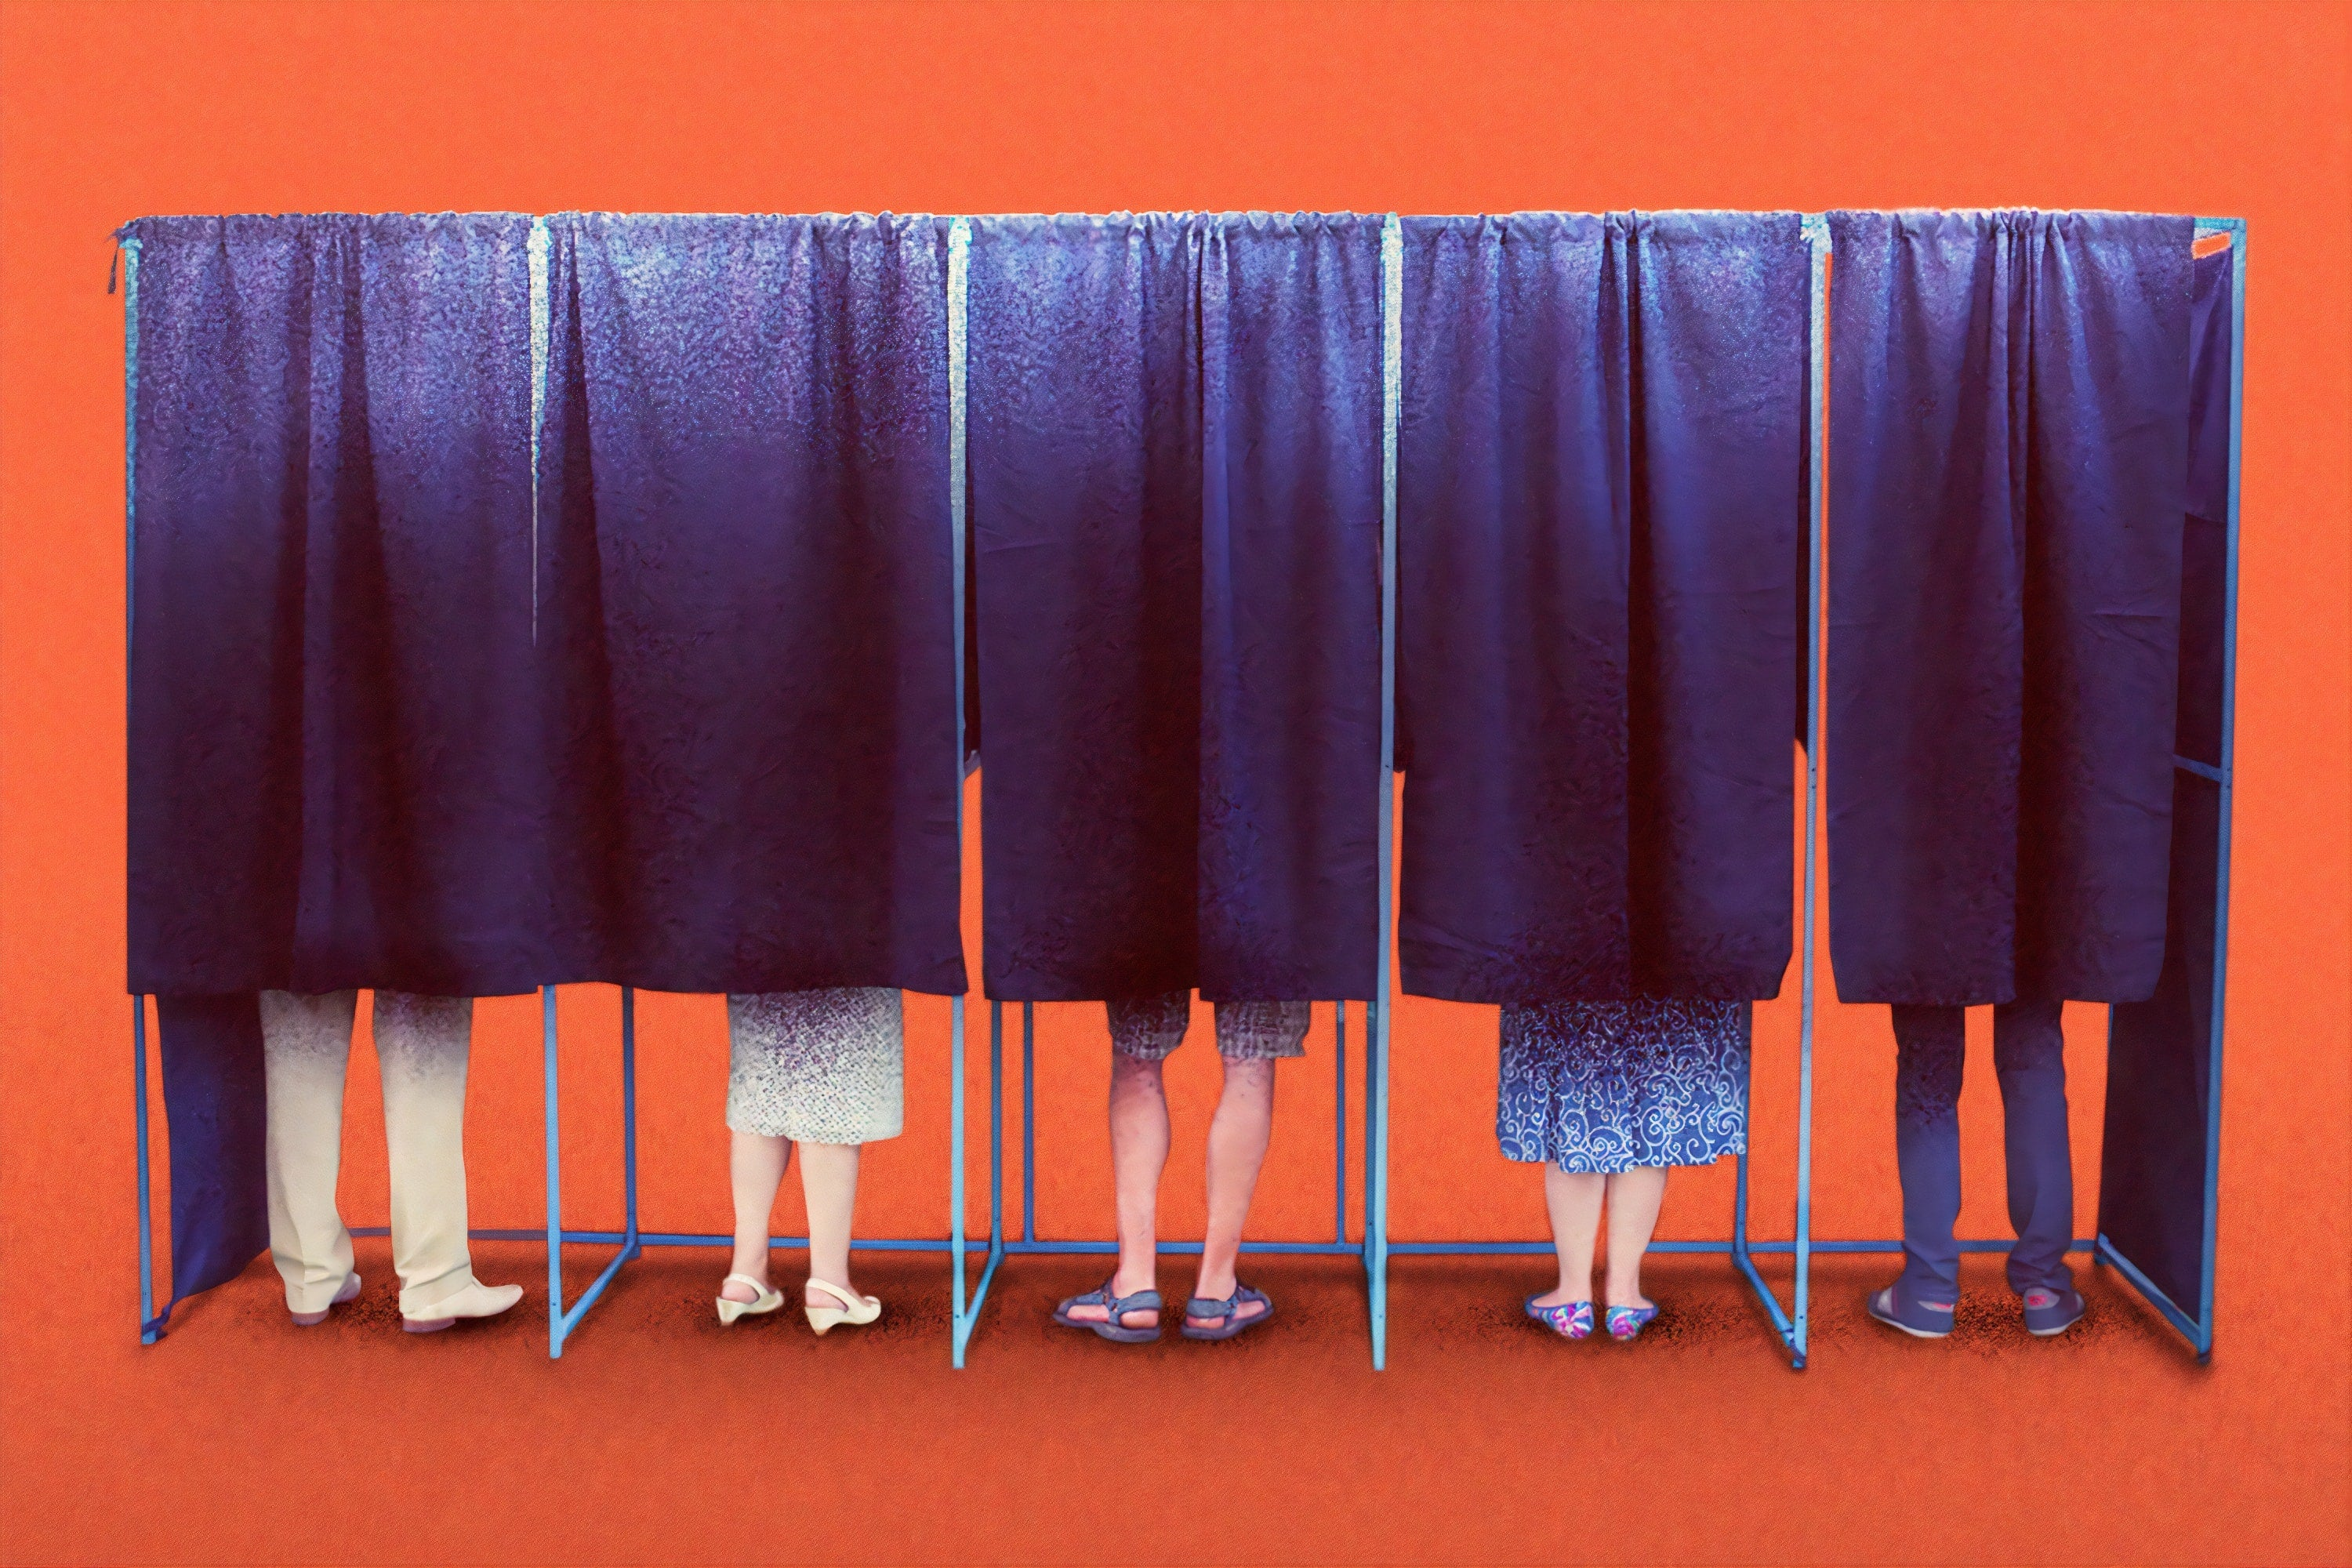 Be a poll worker to help make voting safer and more accessible.